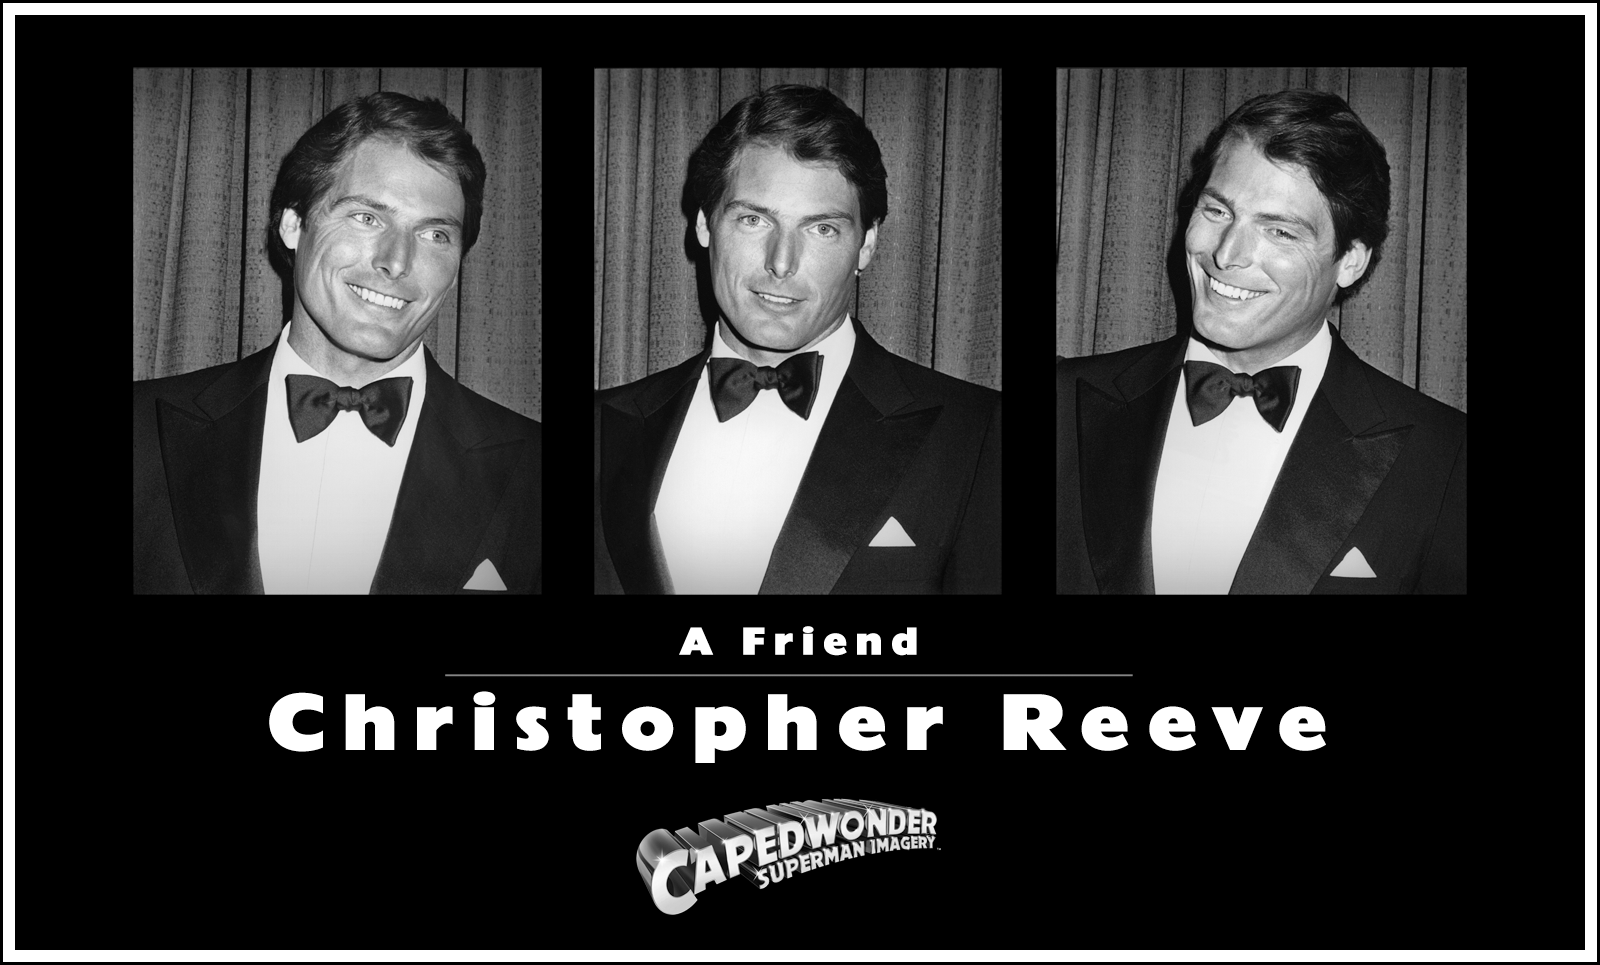 CW-Christopher-Reeve-trio-friend